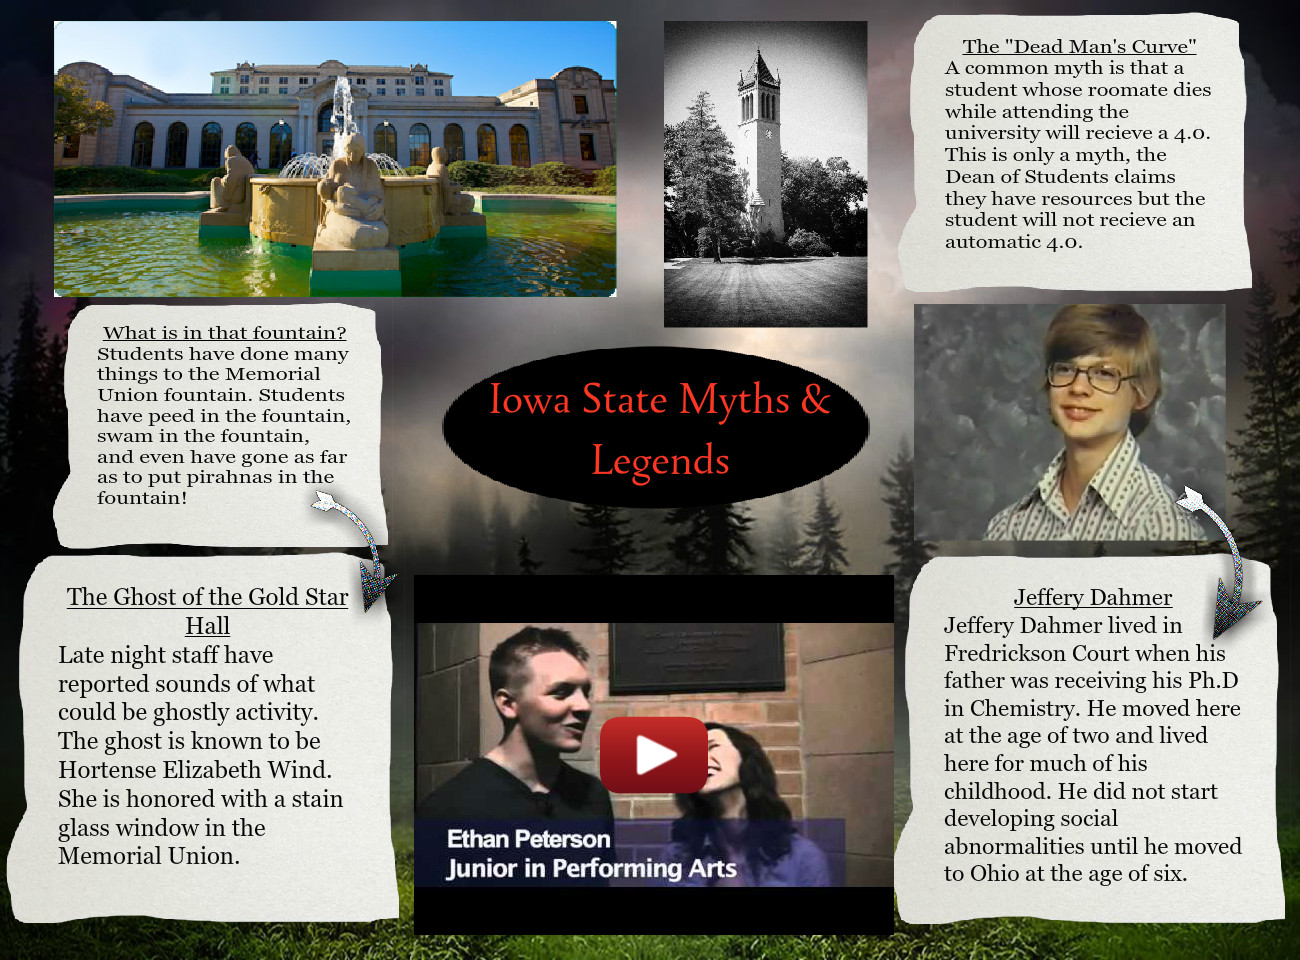 Iowa State University Myths and Legends